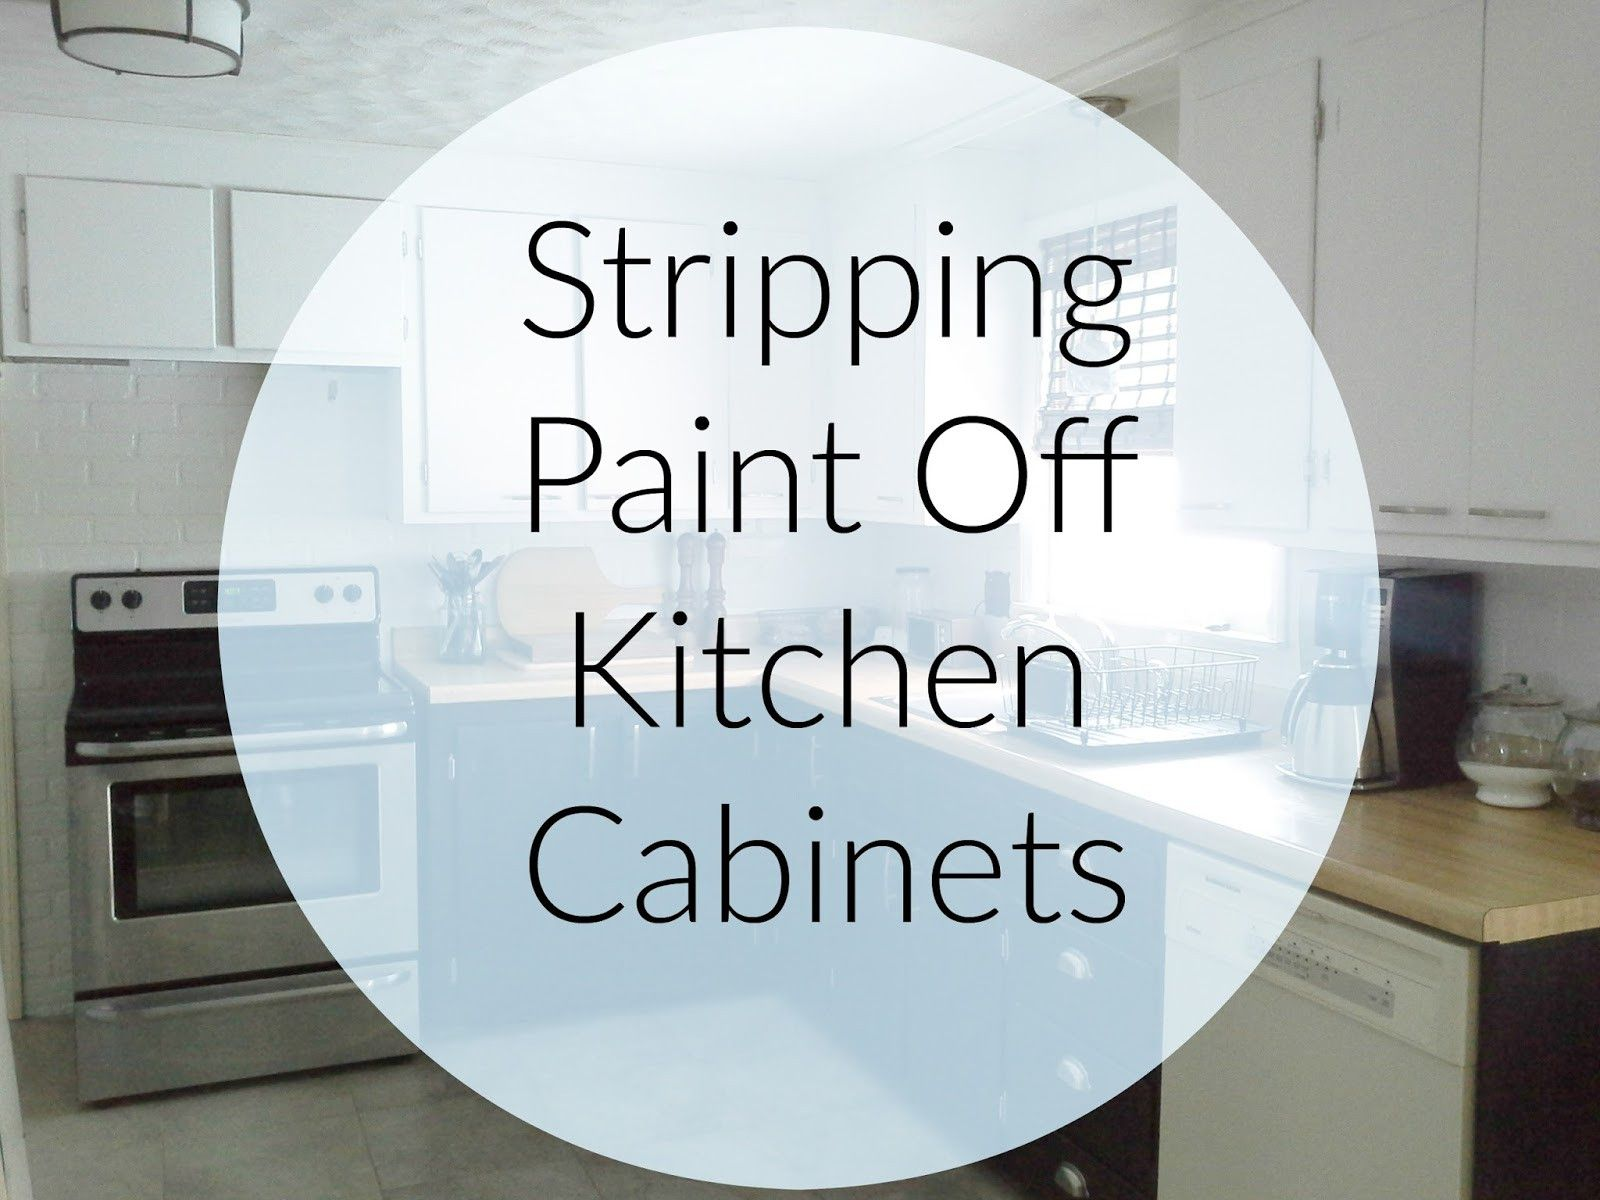 50+ How to Get Paint Off Cabinets - Chalkboard Ideas for ...